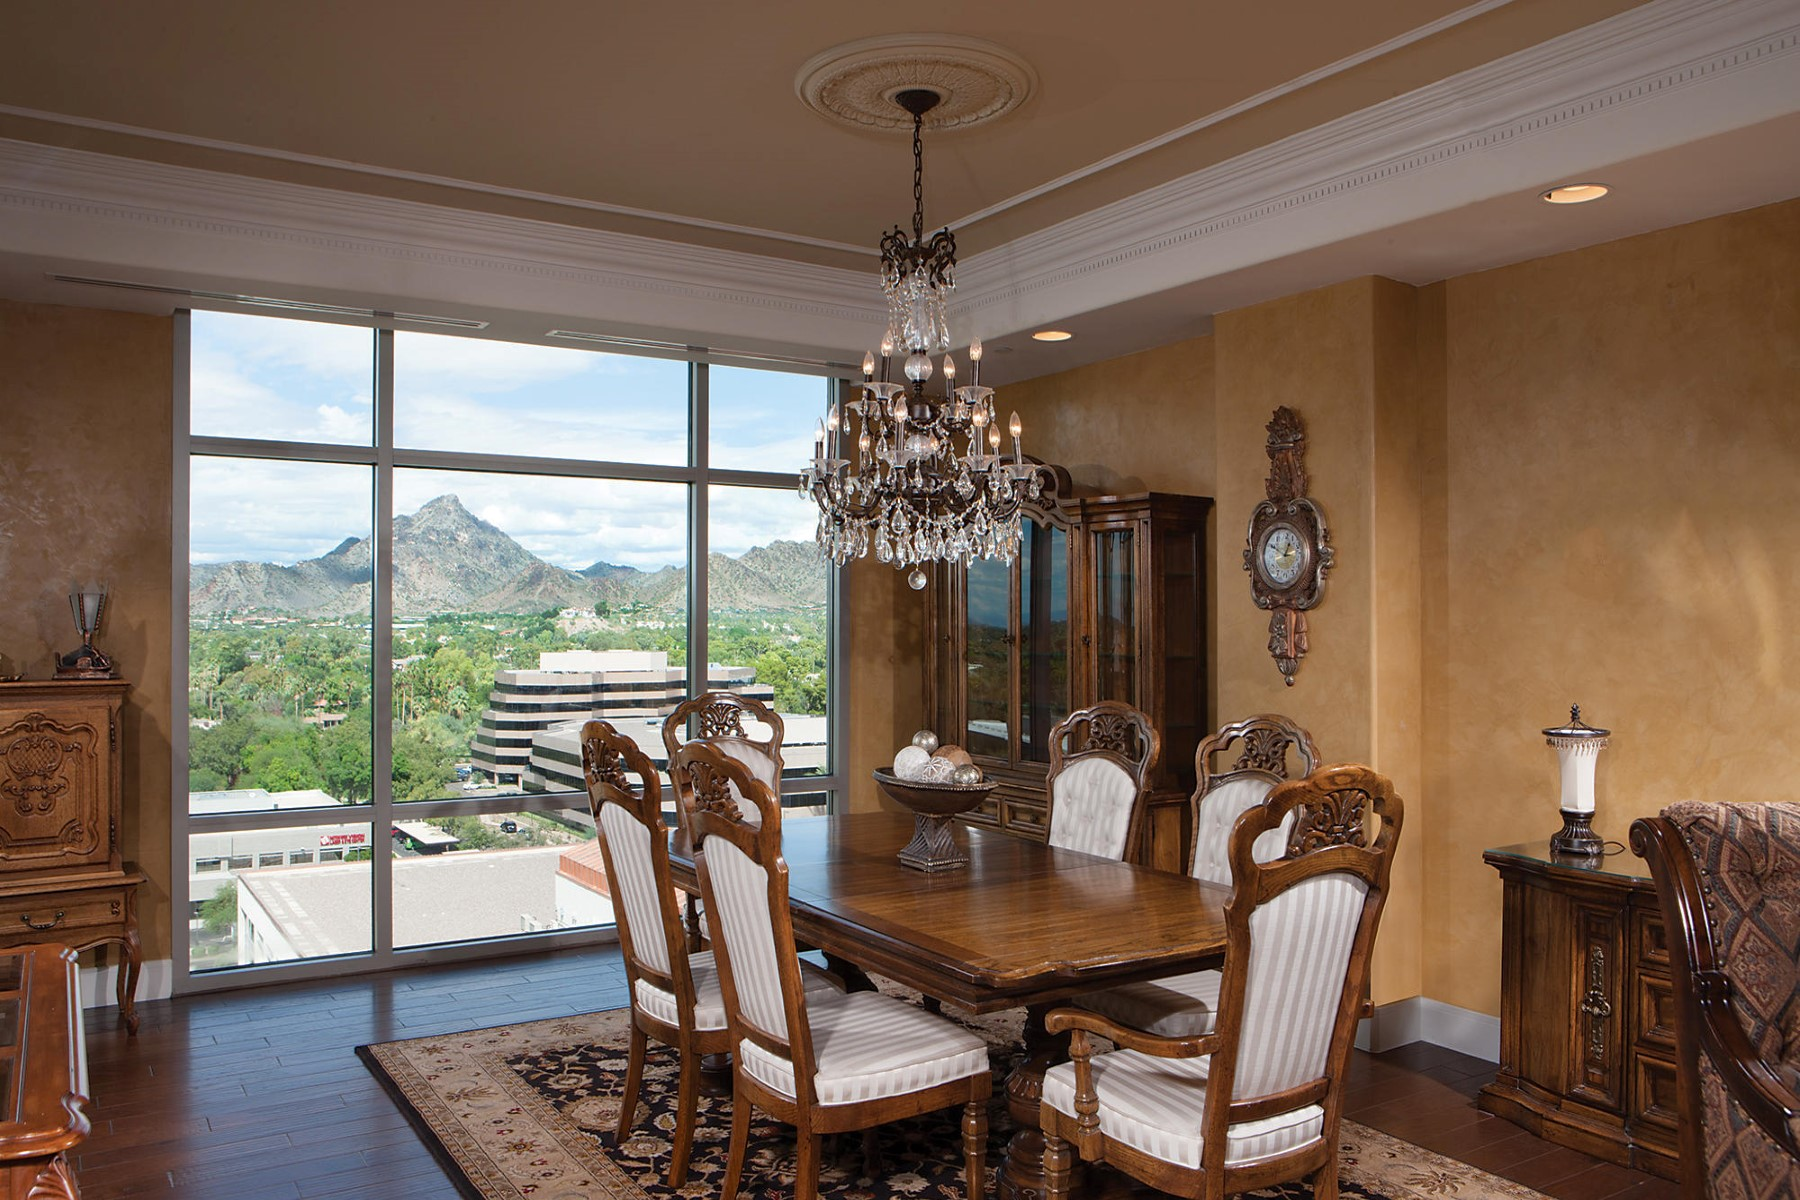 Apartment for Sale at Beautiful home in the heart of Phoenix's prestigious downtown Biltmore district 2211 E Camelback Rd #1101 Phoenix, Arizona, 85016 United States